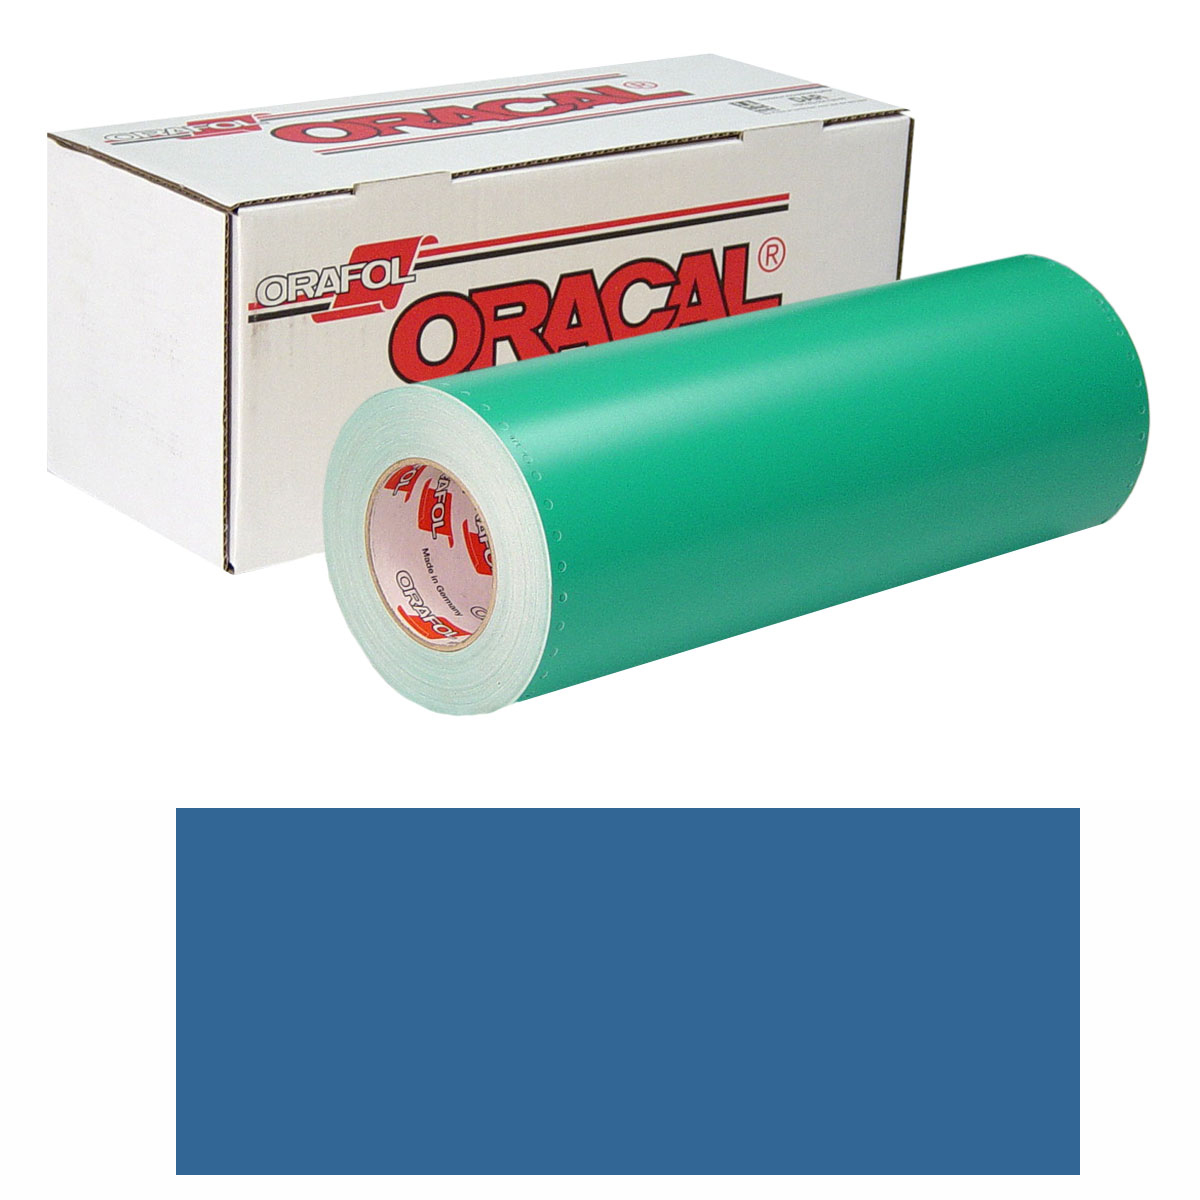 ORACAL 8500 15in X 50yd 066 Turquois Blue